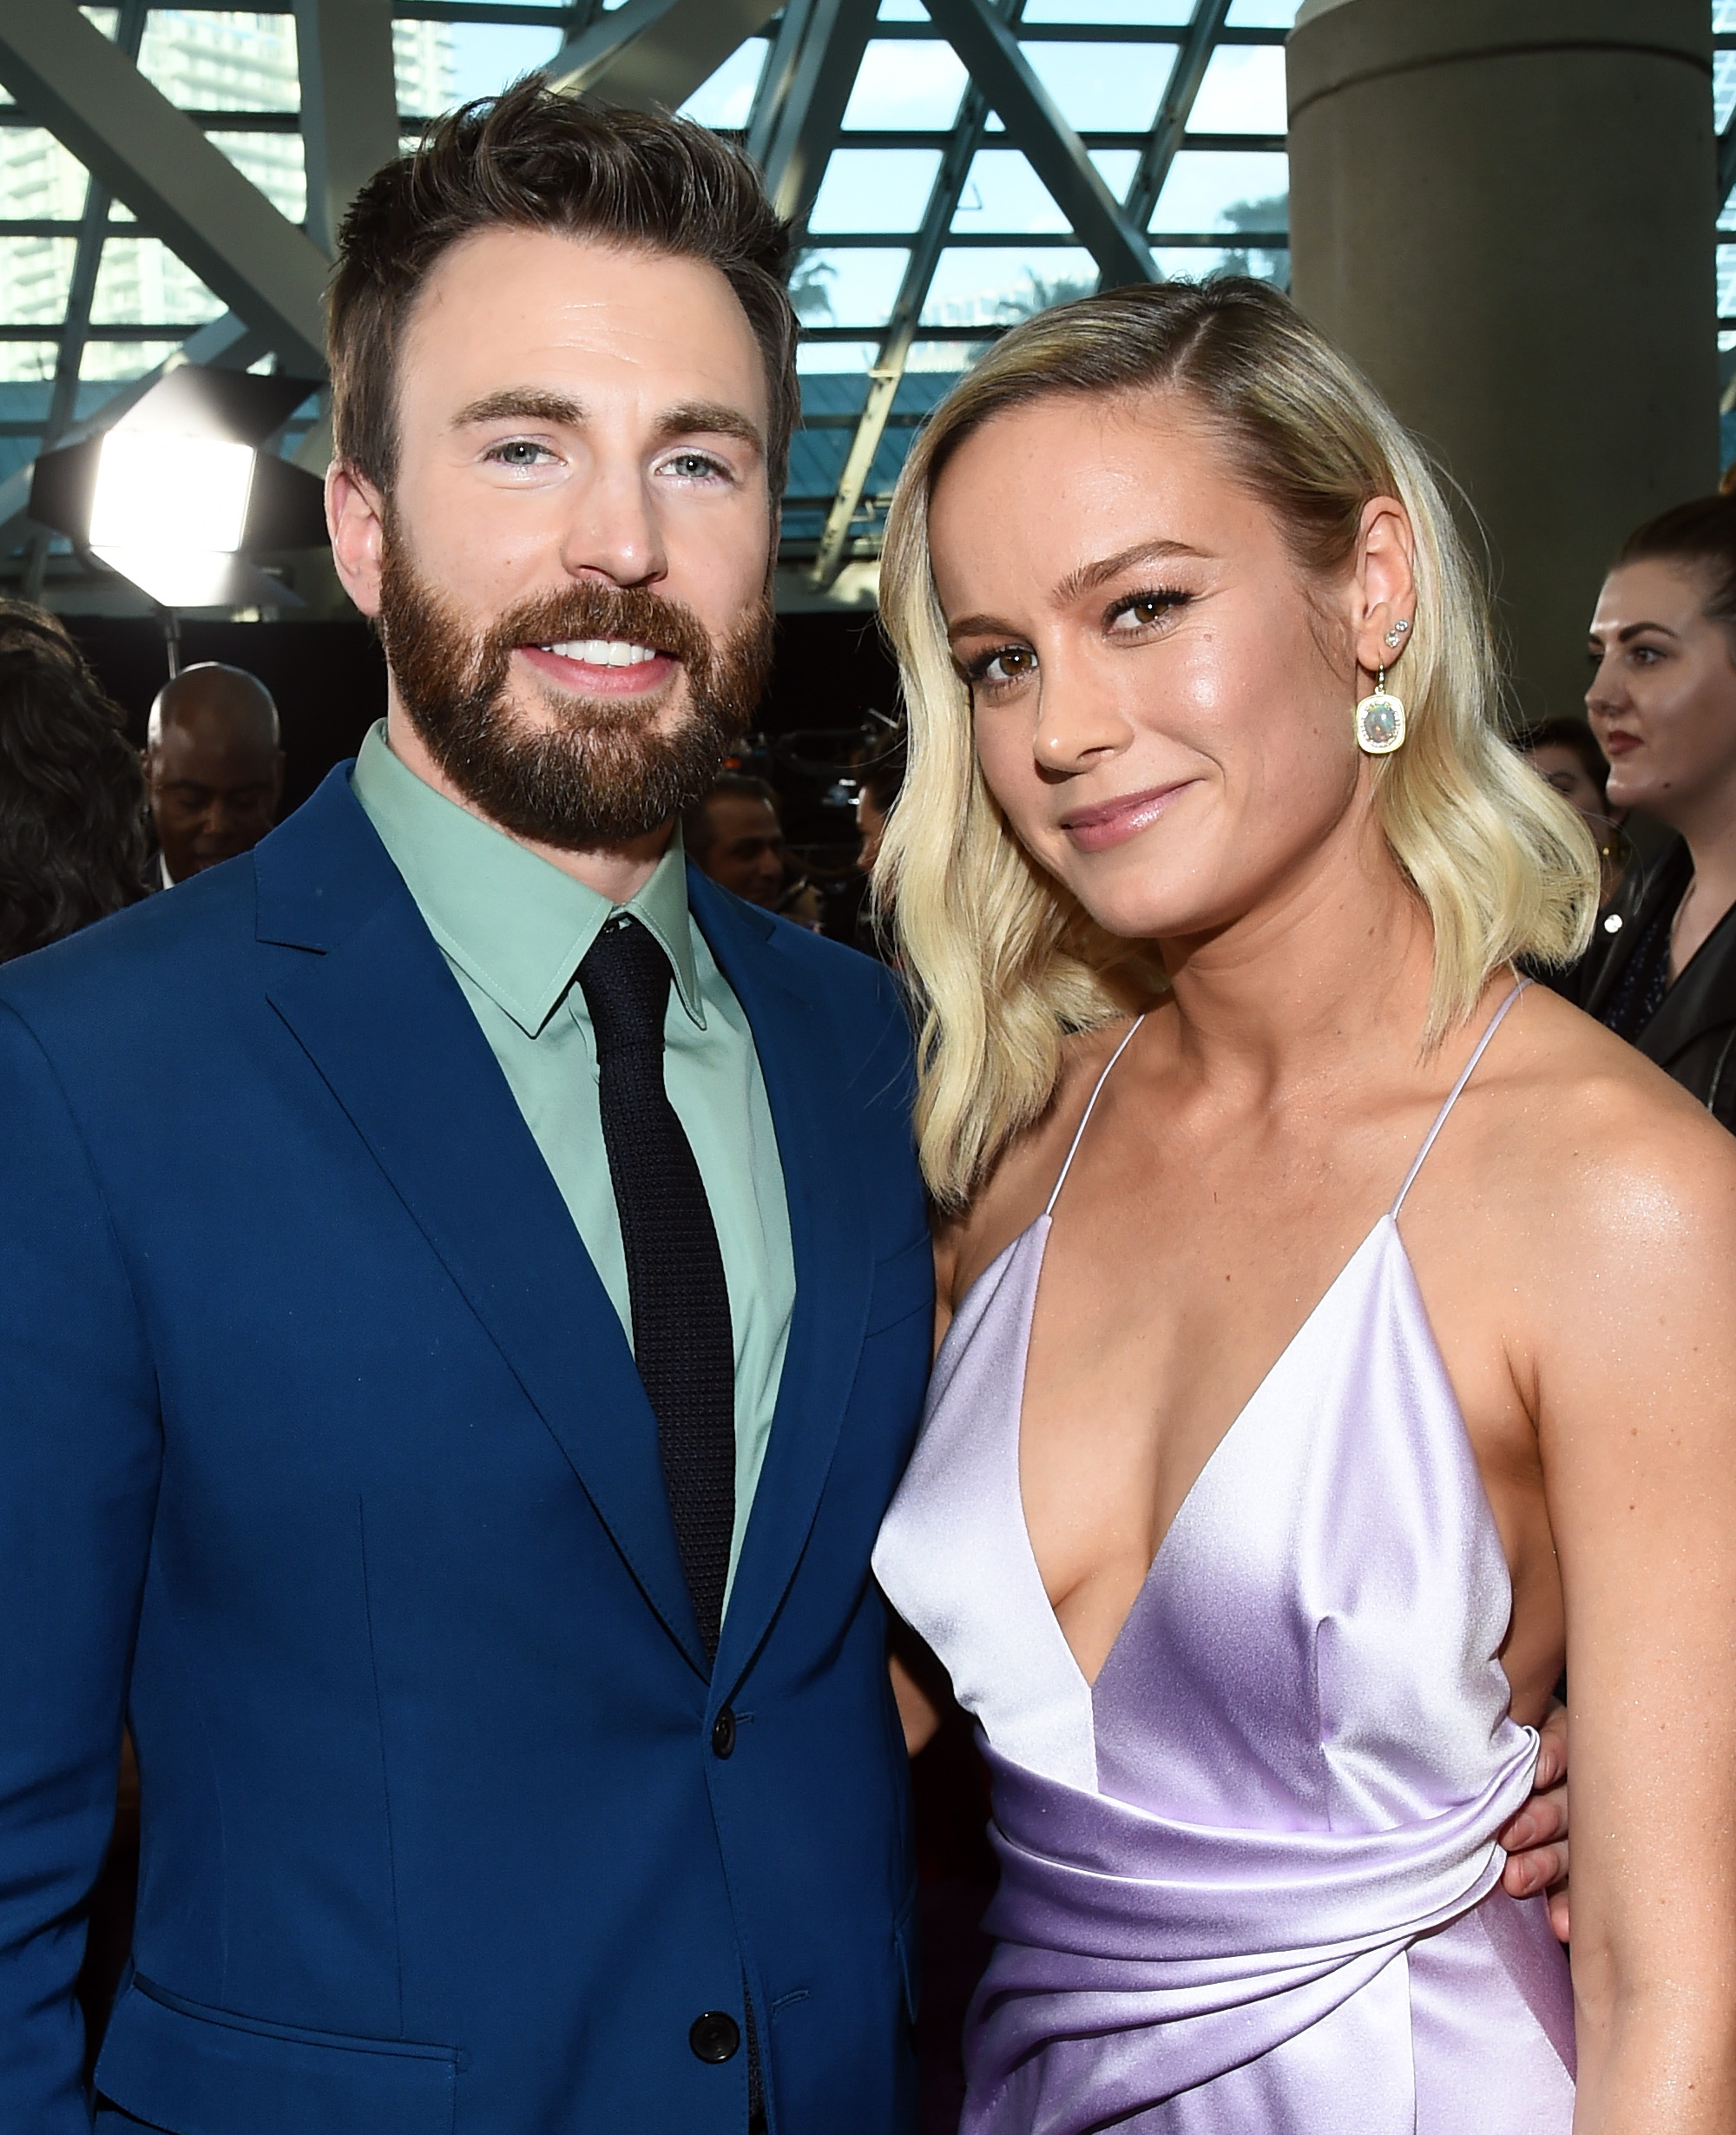 Chris Evans and Brie Larson'Avengers: Endgame' Film Premiere, Arrivals, LA Convention Center, Los Angeles, USA - 22 Apr 2019